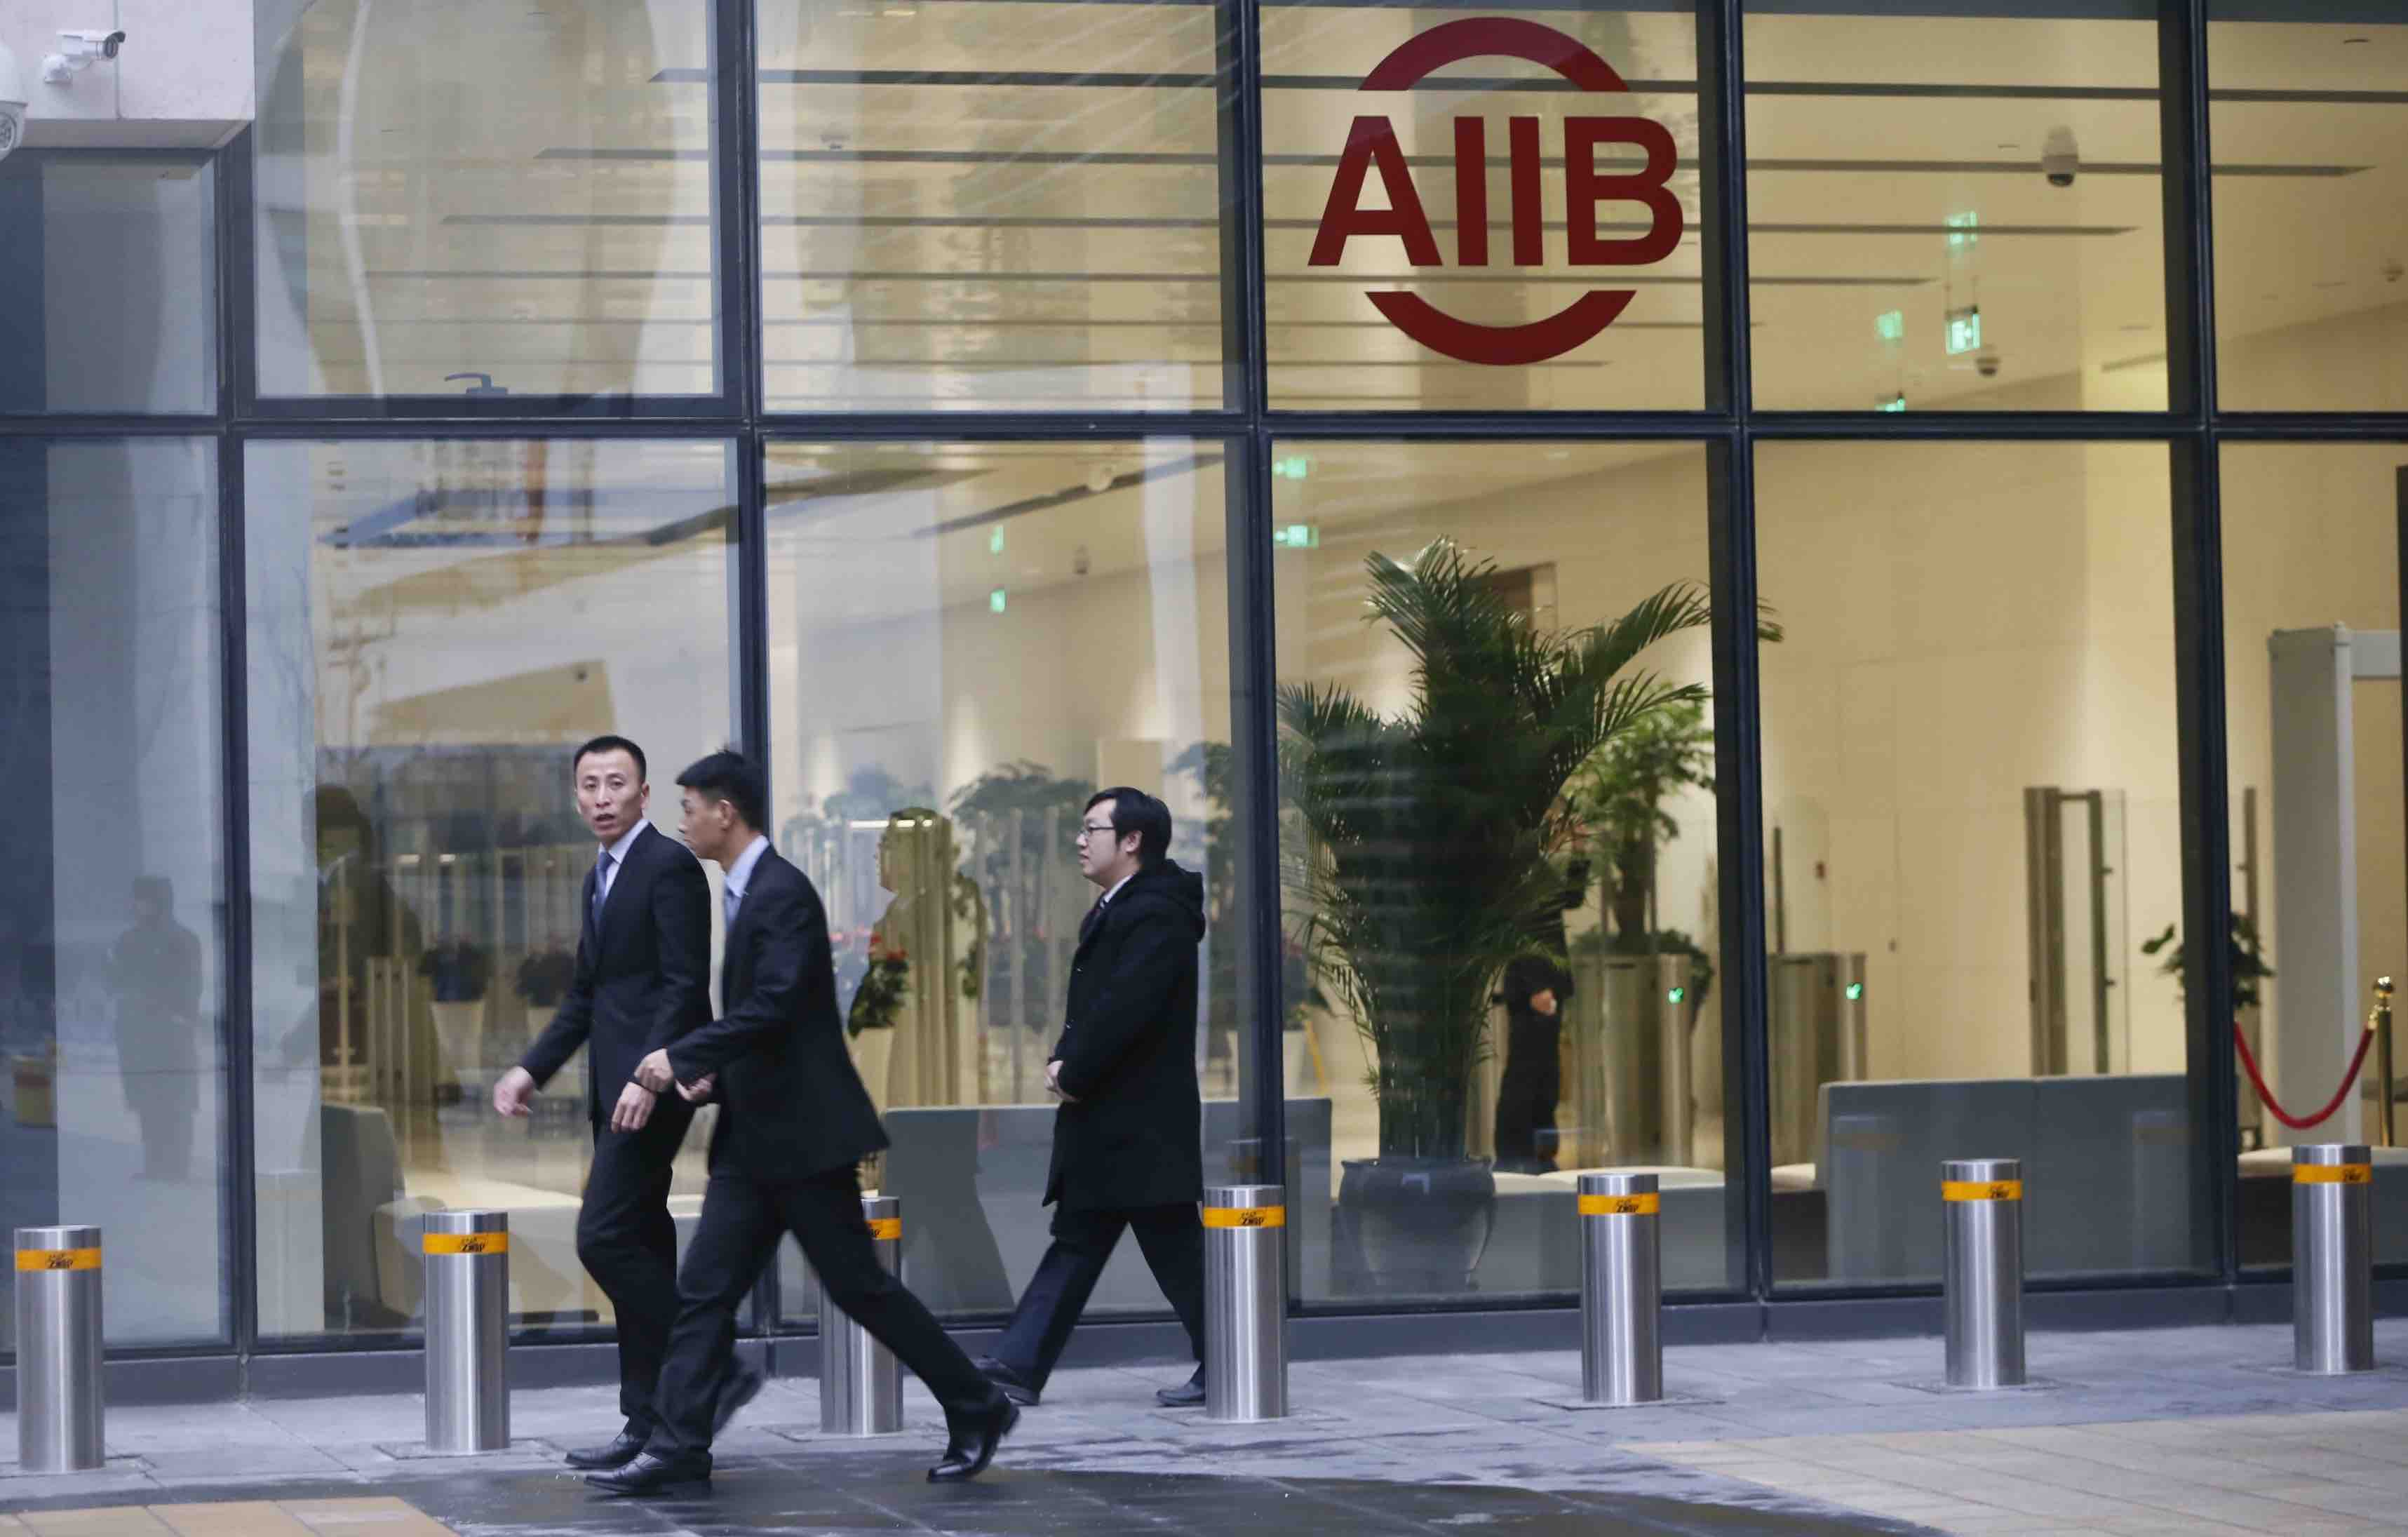 AIIB to pursue shared development, innovation and inclusiveness: bank president